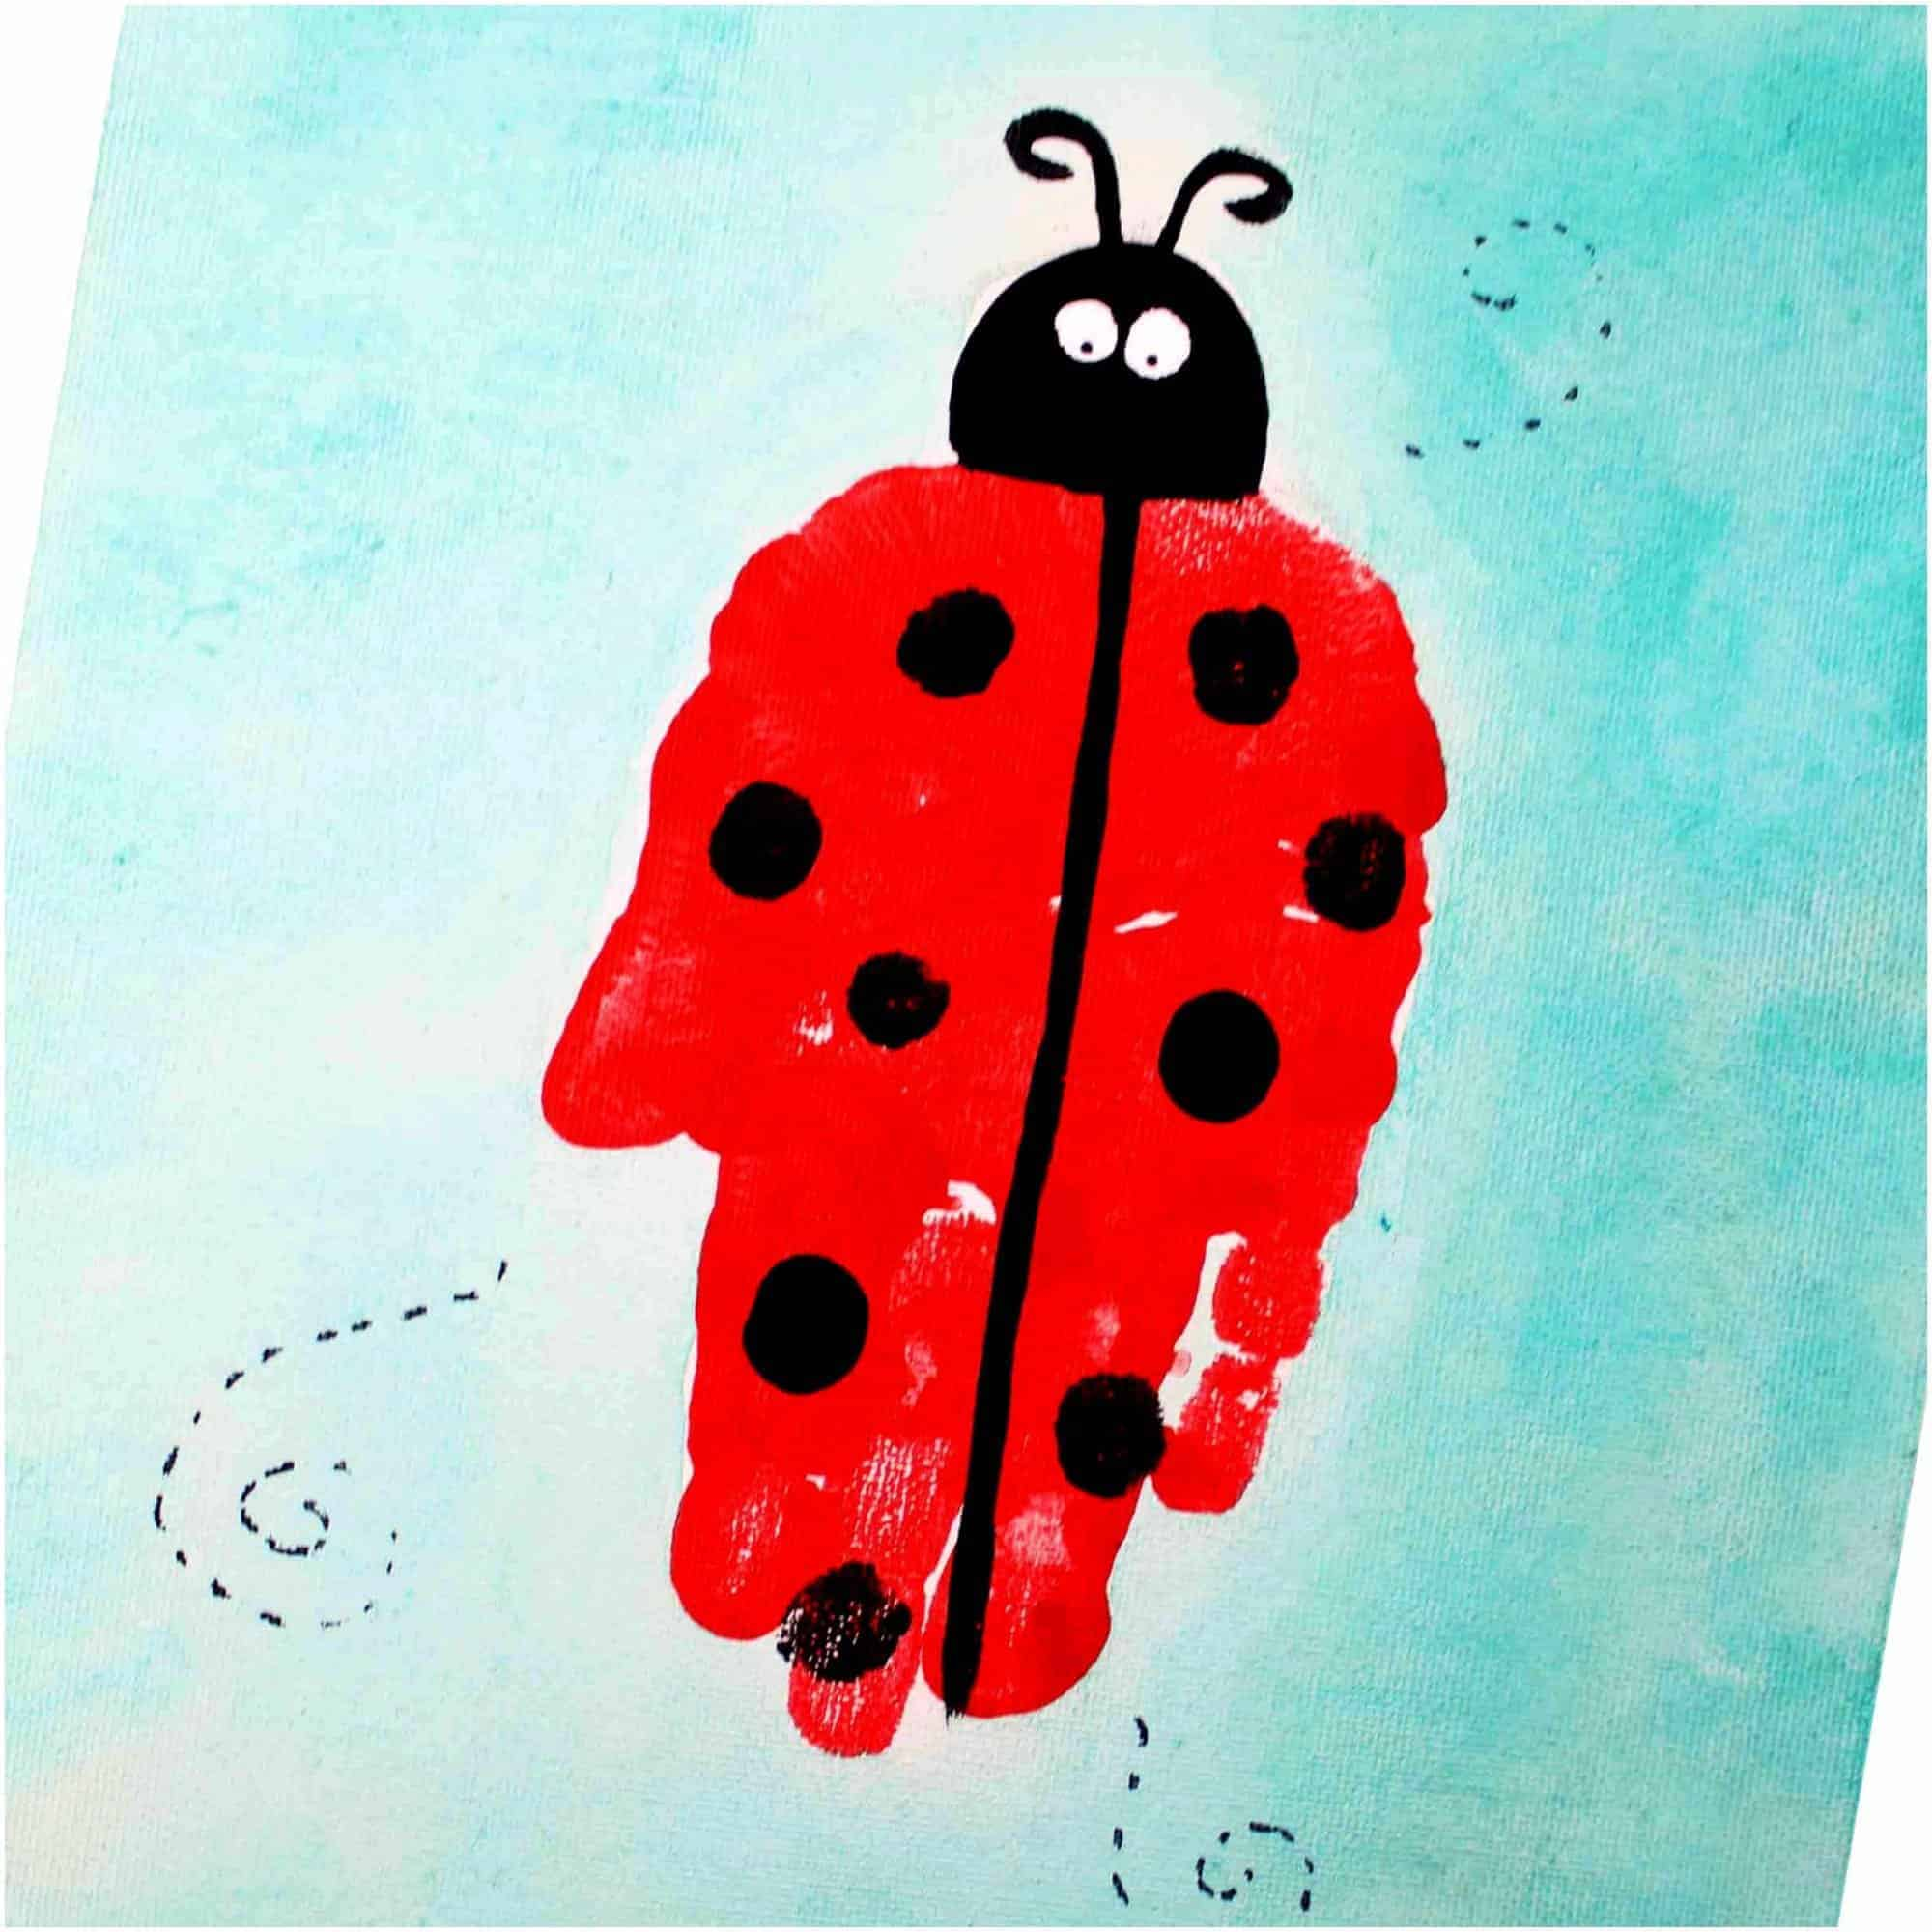 ladybug art project for kids using handprint art